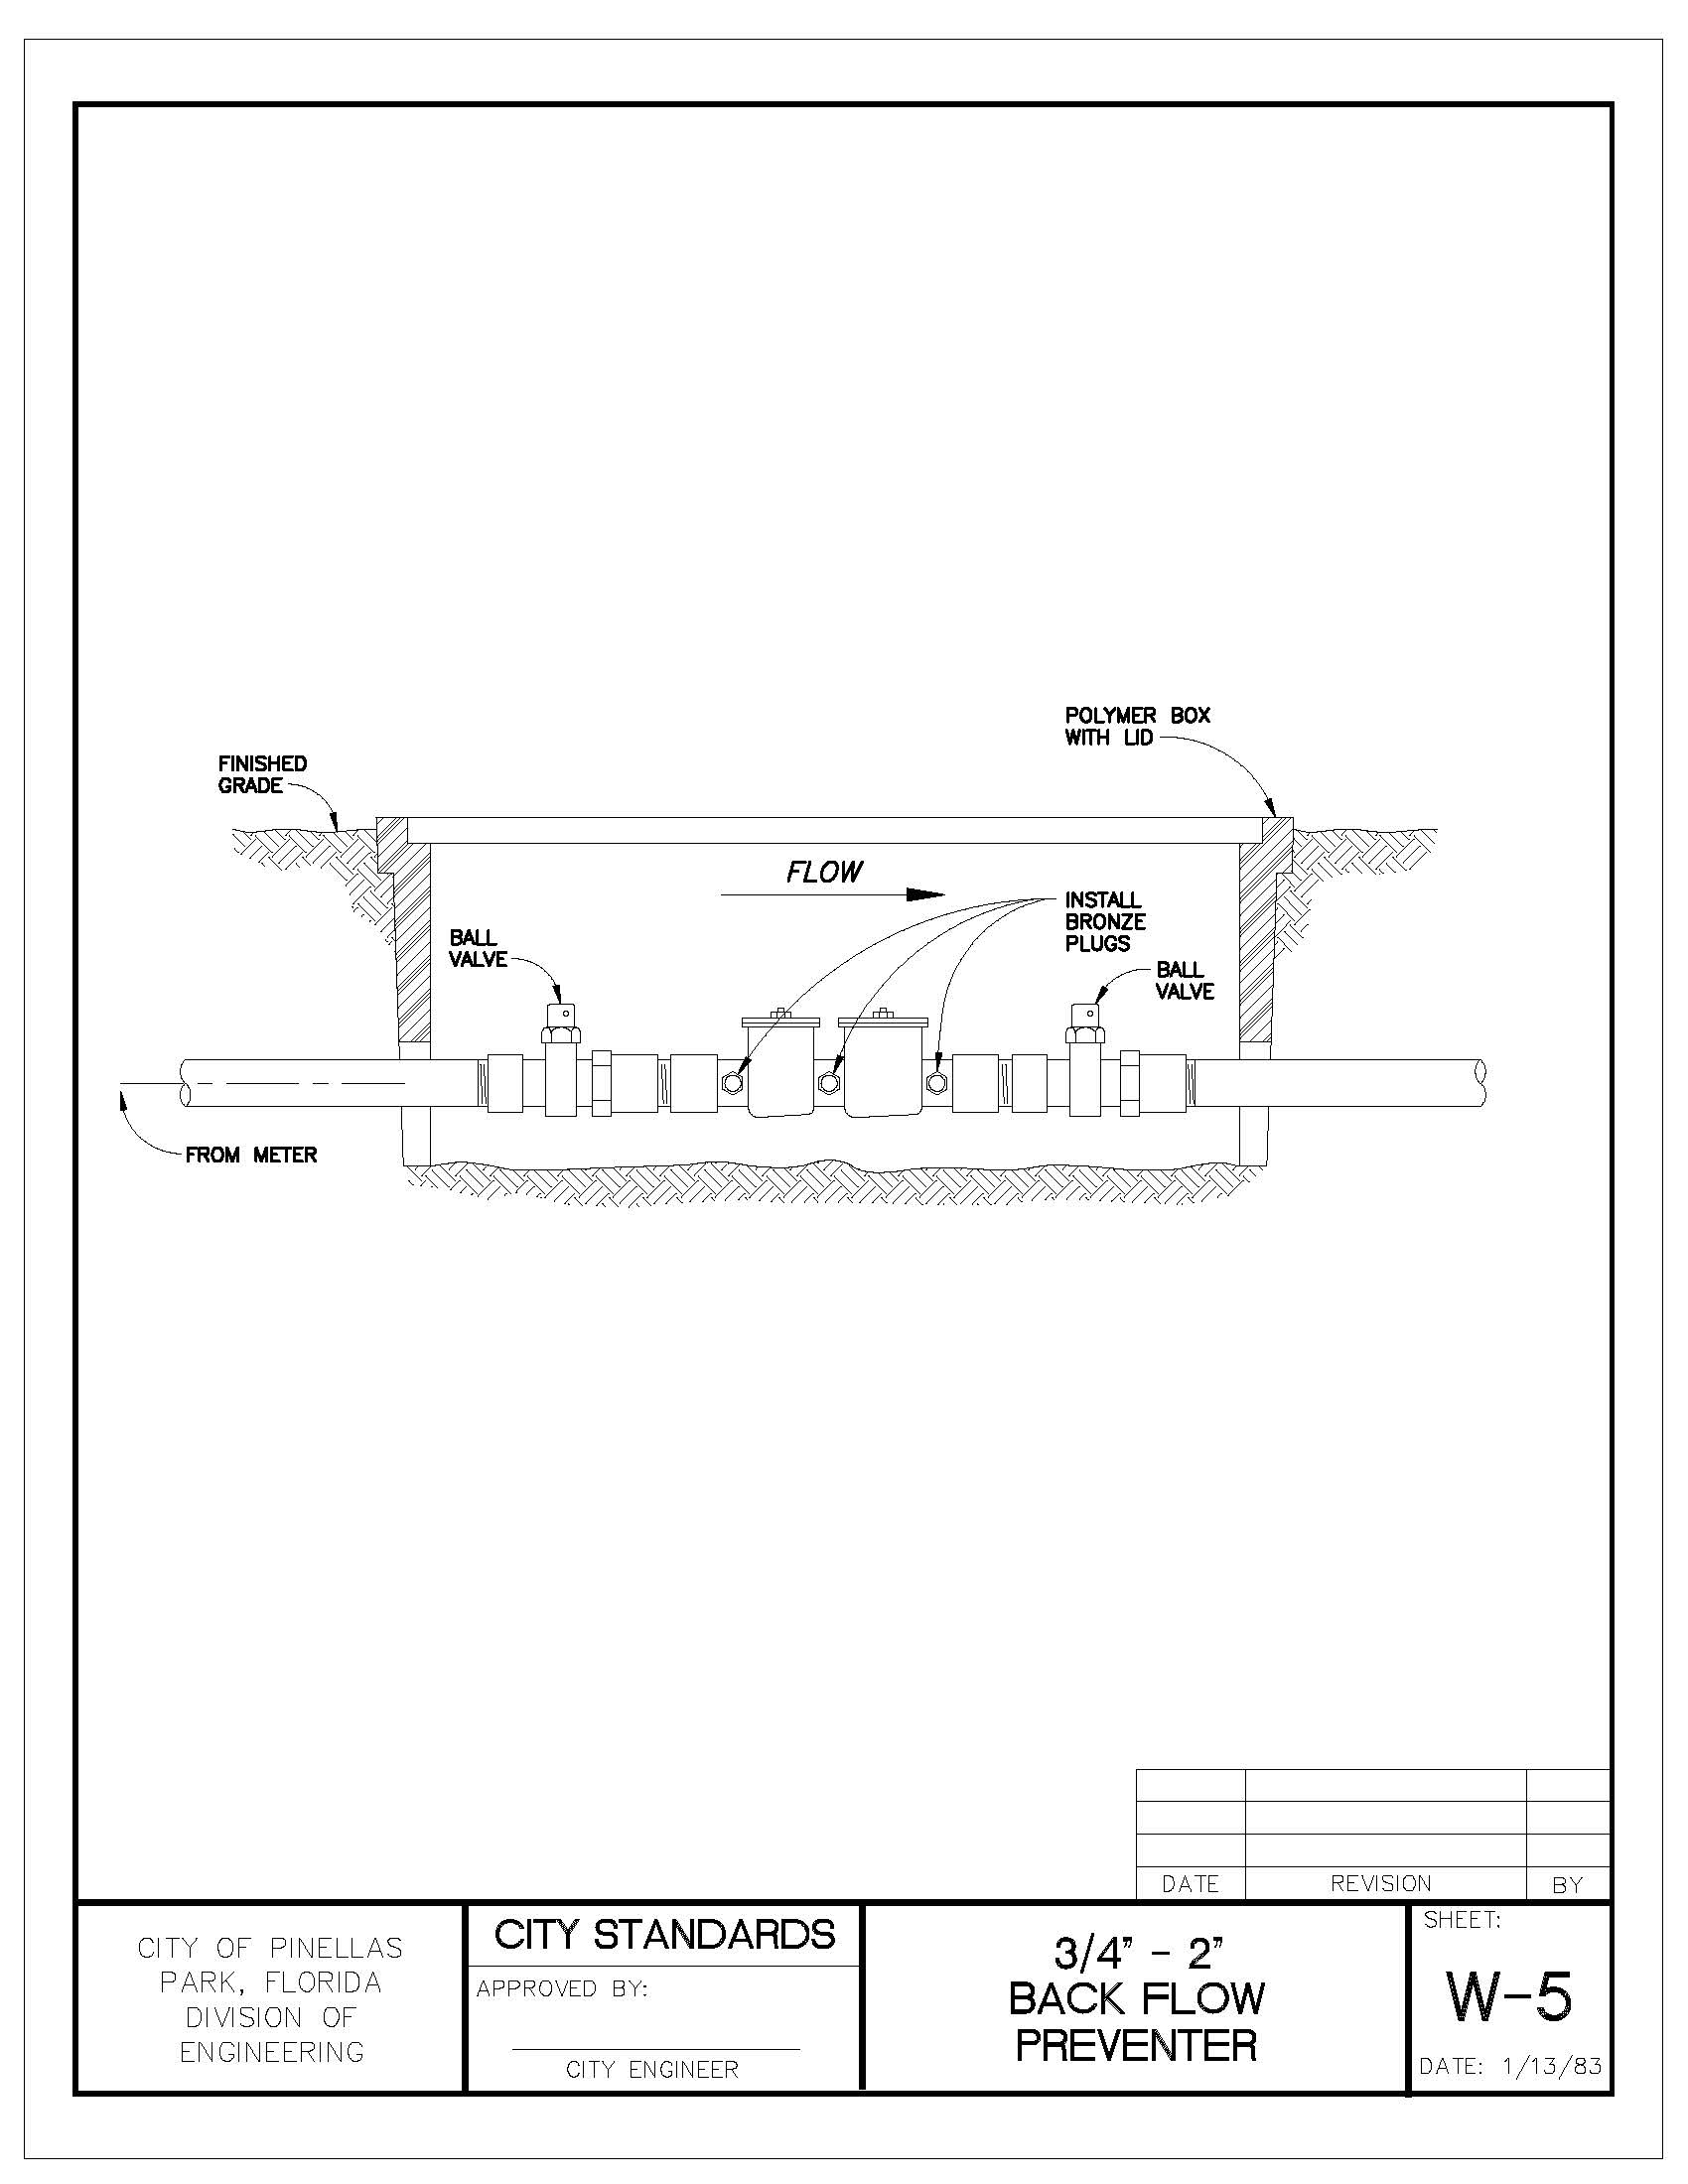 Engineering Manual v5_201908121127291138_Page_079 3/4 - 2 inch back flow preventer